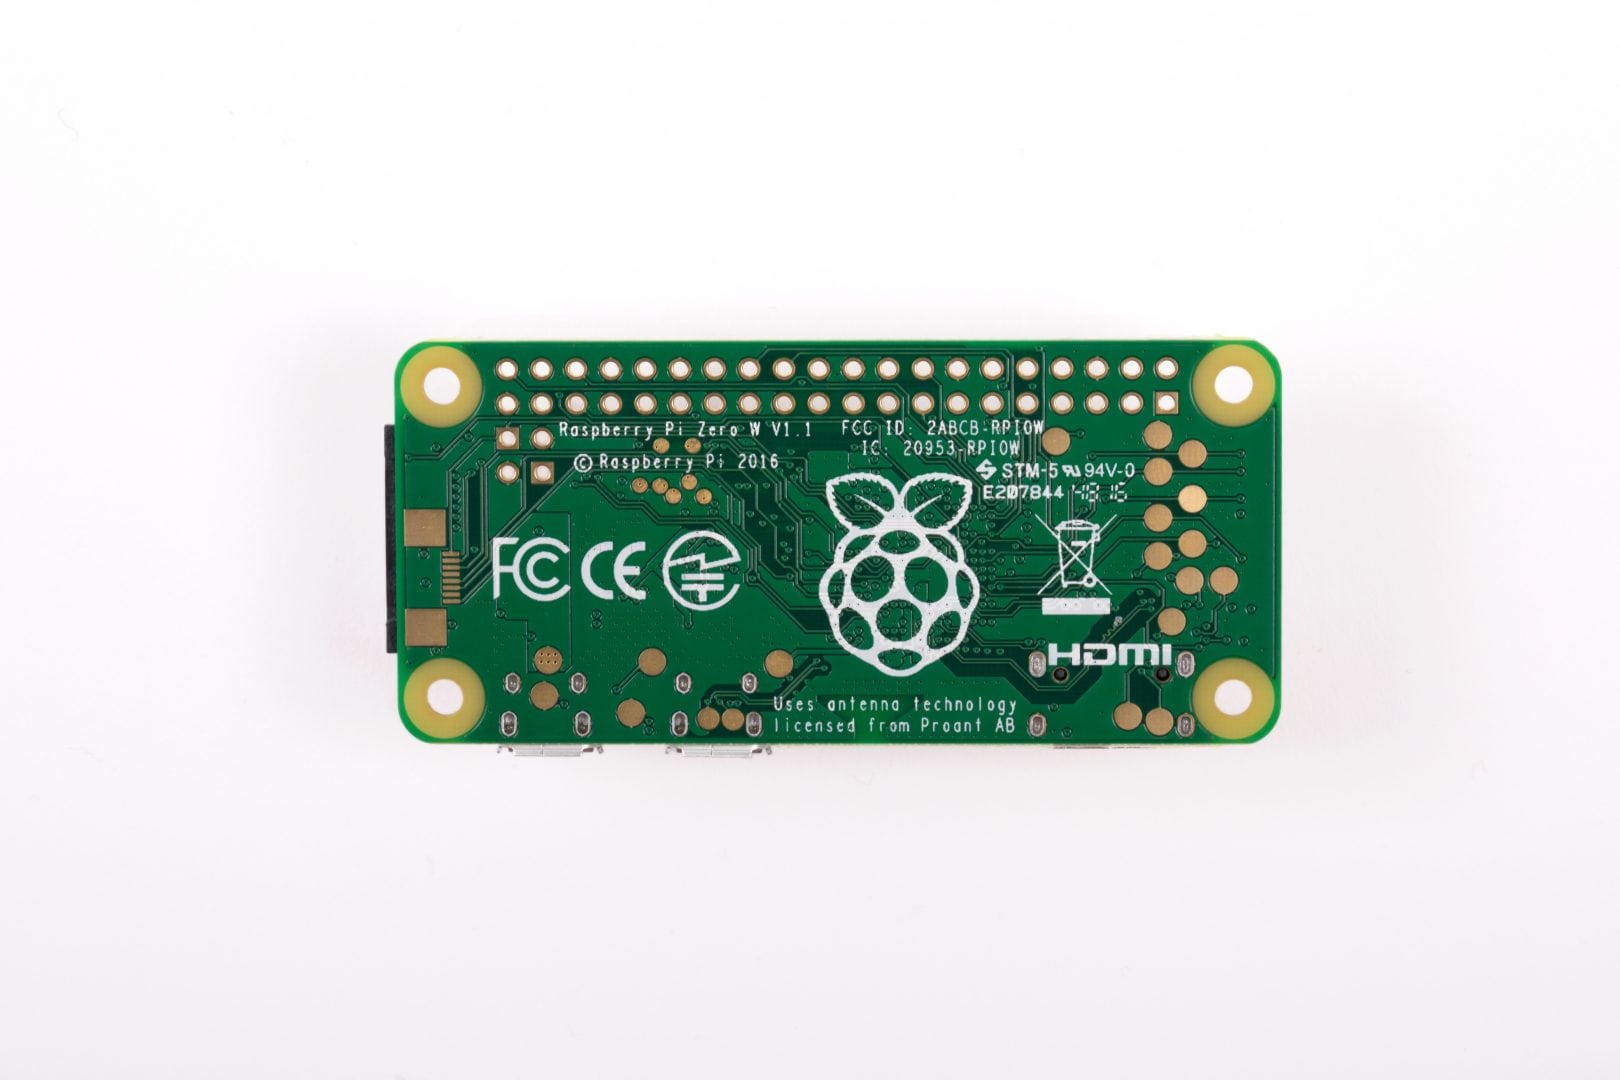 Raspberry Pi Zero W Engineering For Change Orange 512 The Is A Low Cost Computer Development Board It Was Created By Foundation To Promote Science Education